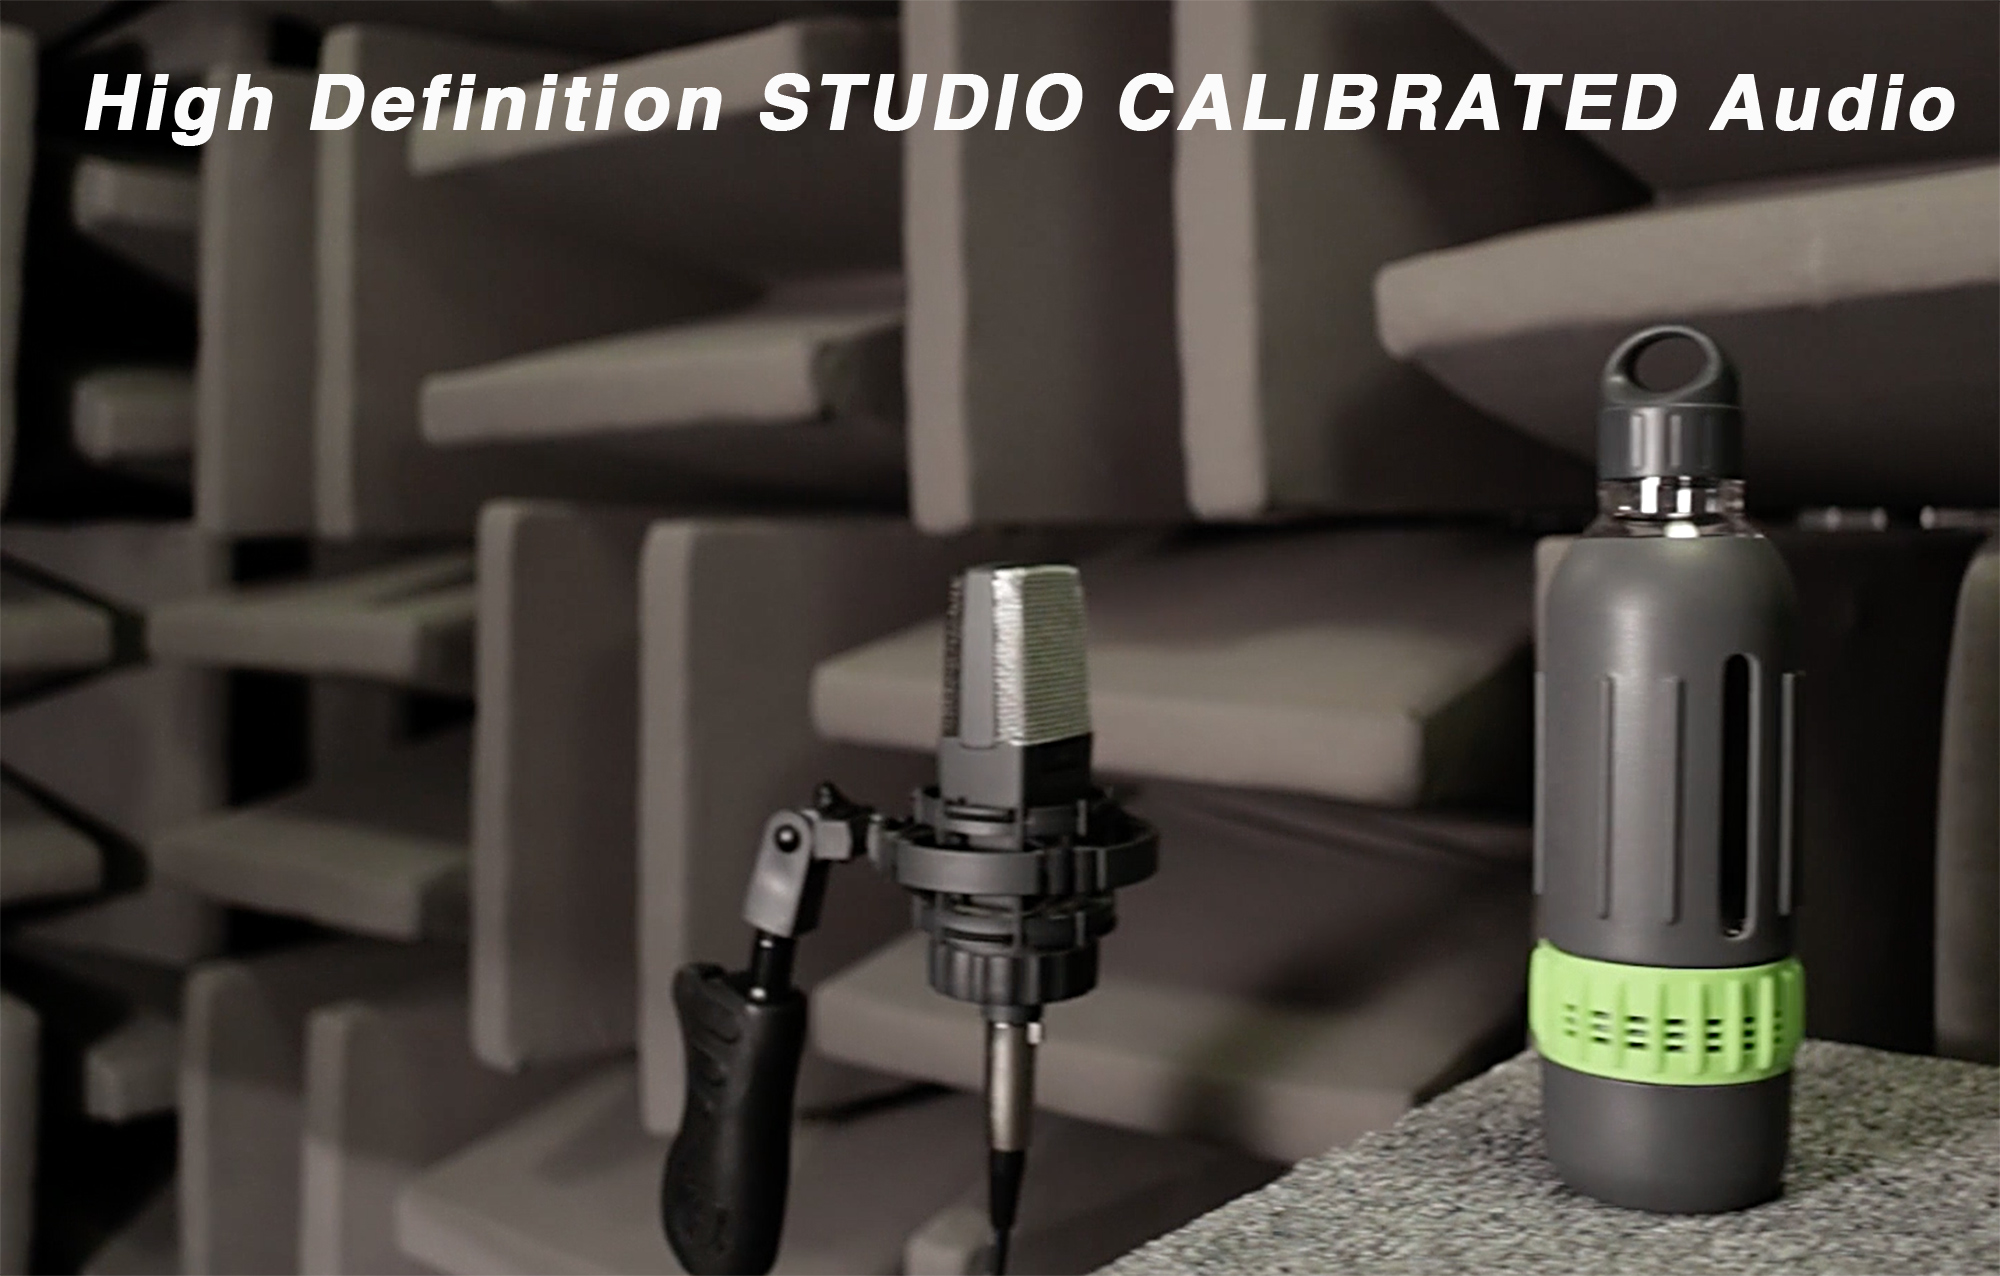 Spritz : The Water Bottle Tuned in an Acoustic Studio